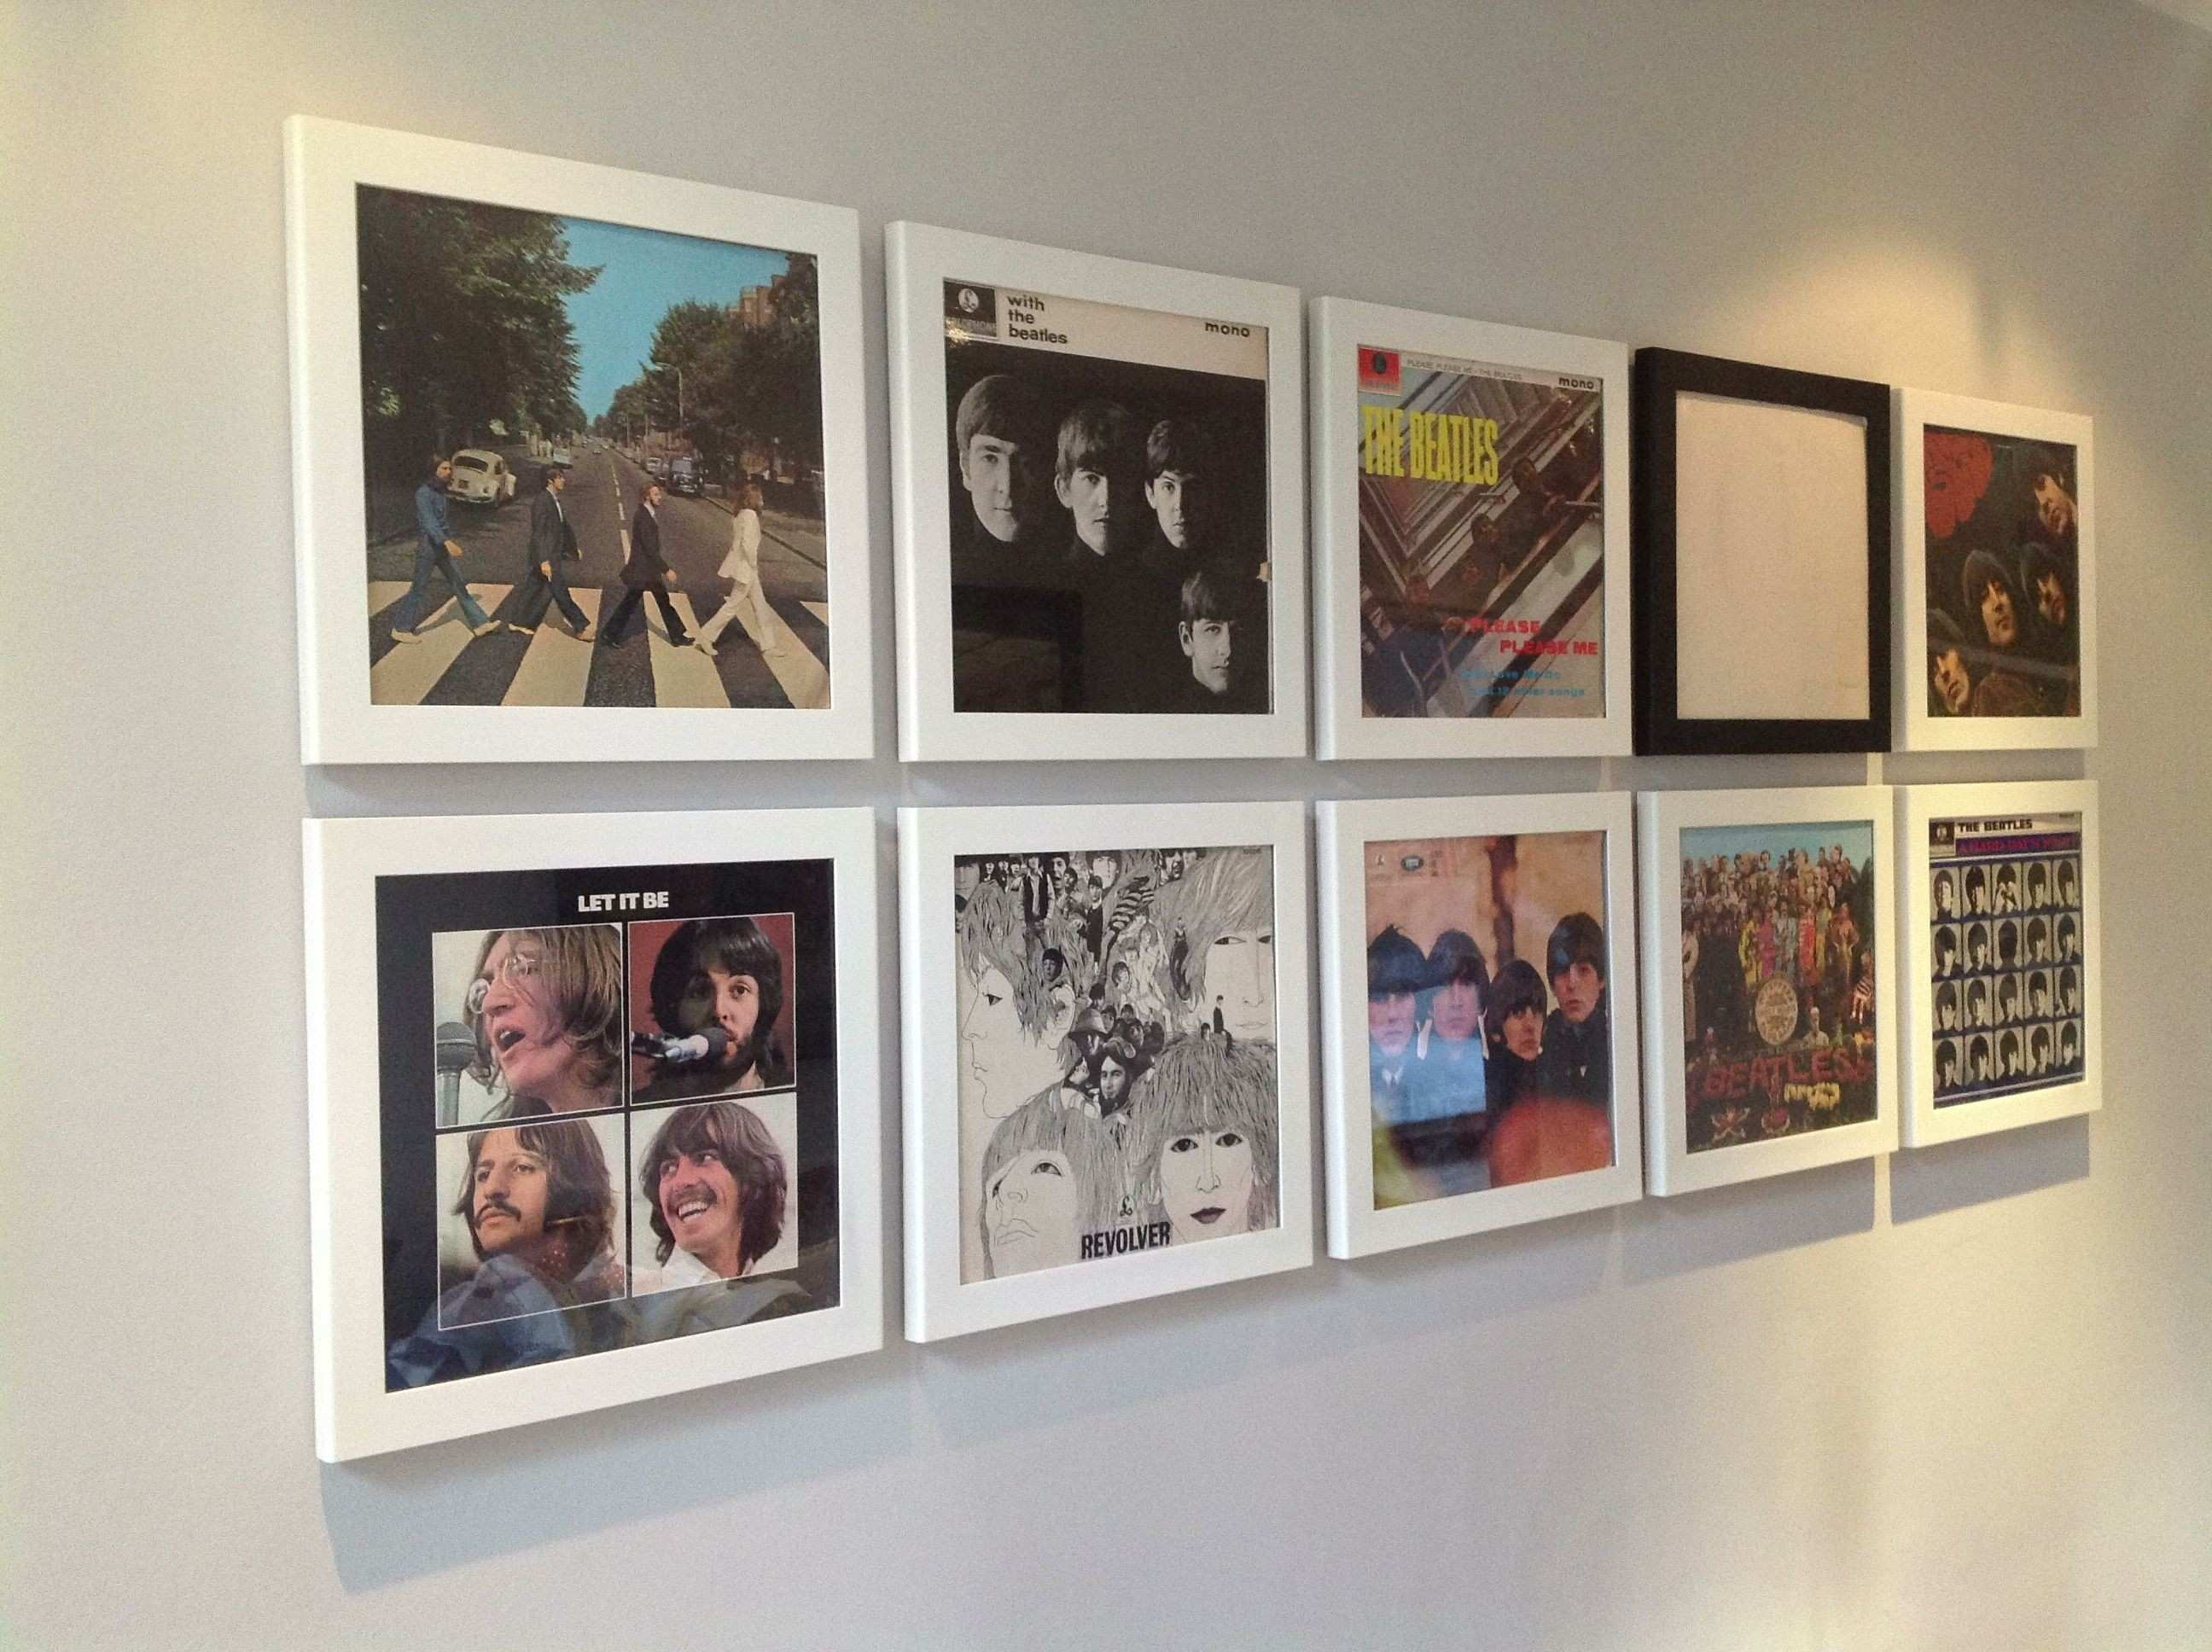 Great idea for cheap wall art old album covers in frames